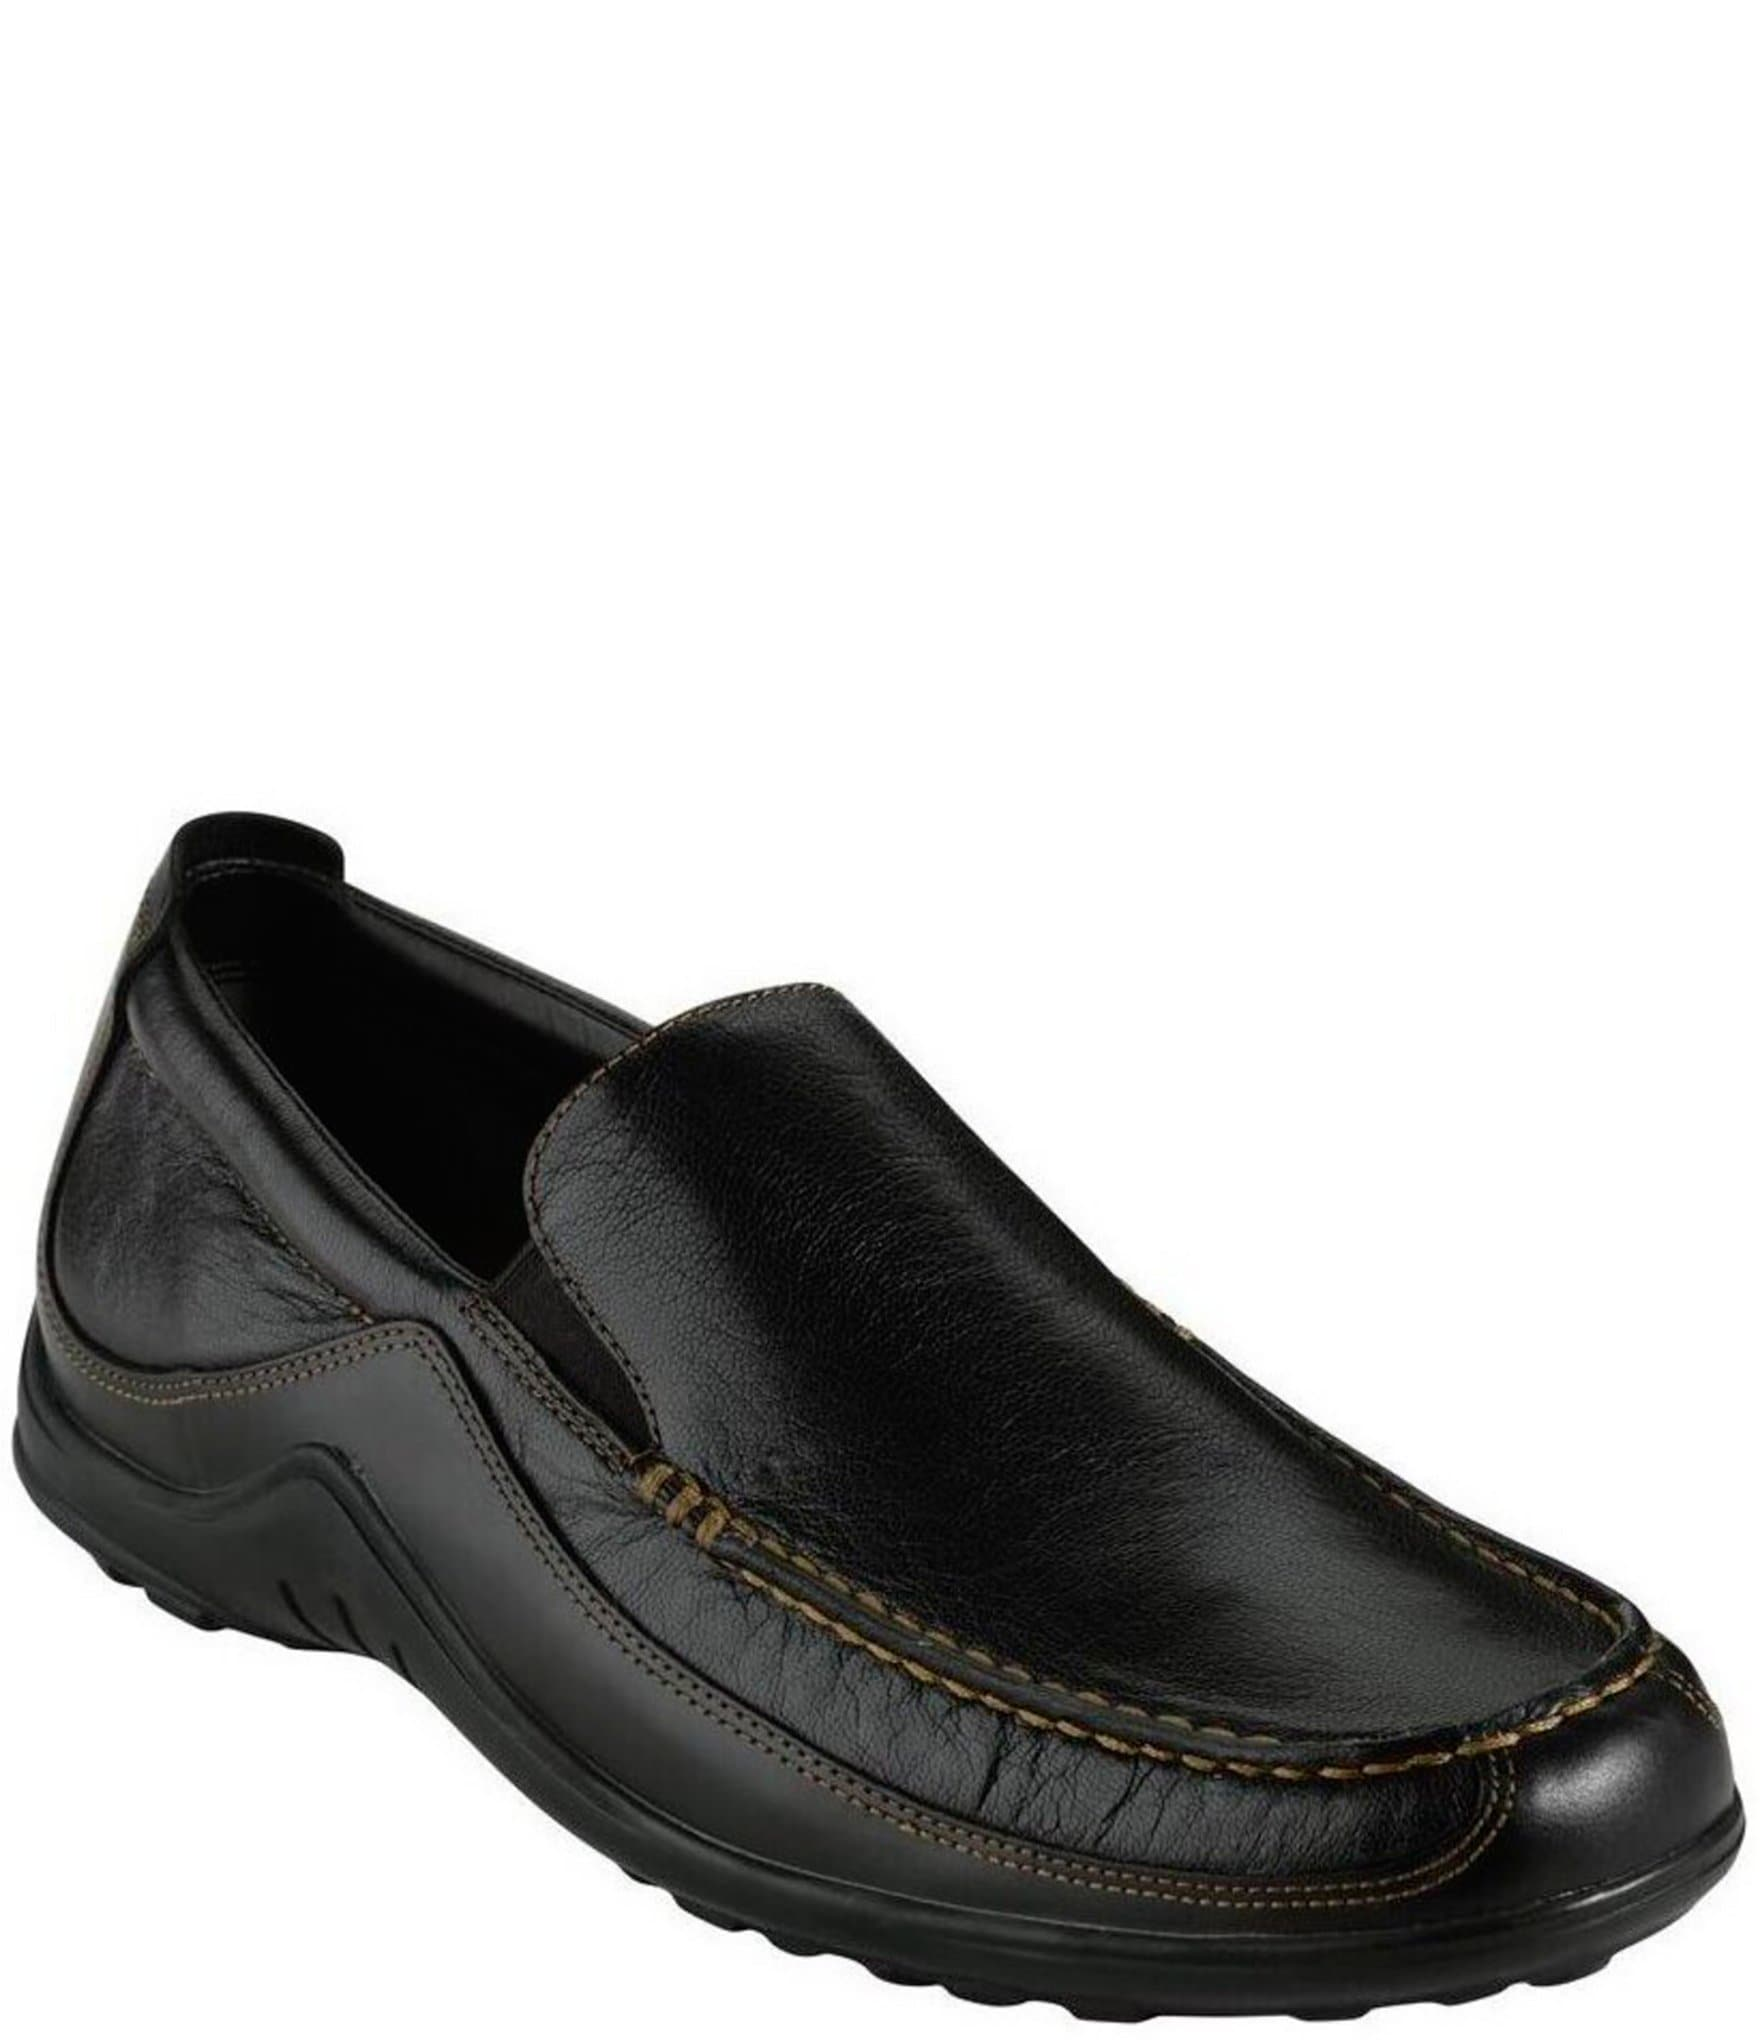 2069d4428 Black Men s Slip-On Casual Shoes